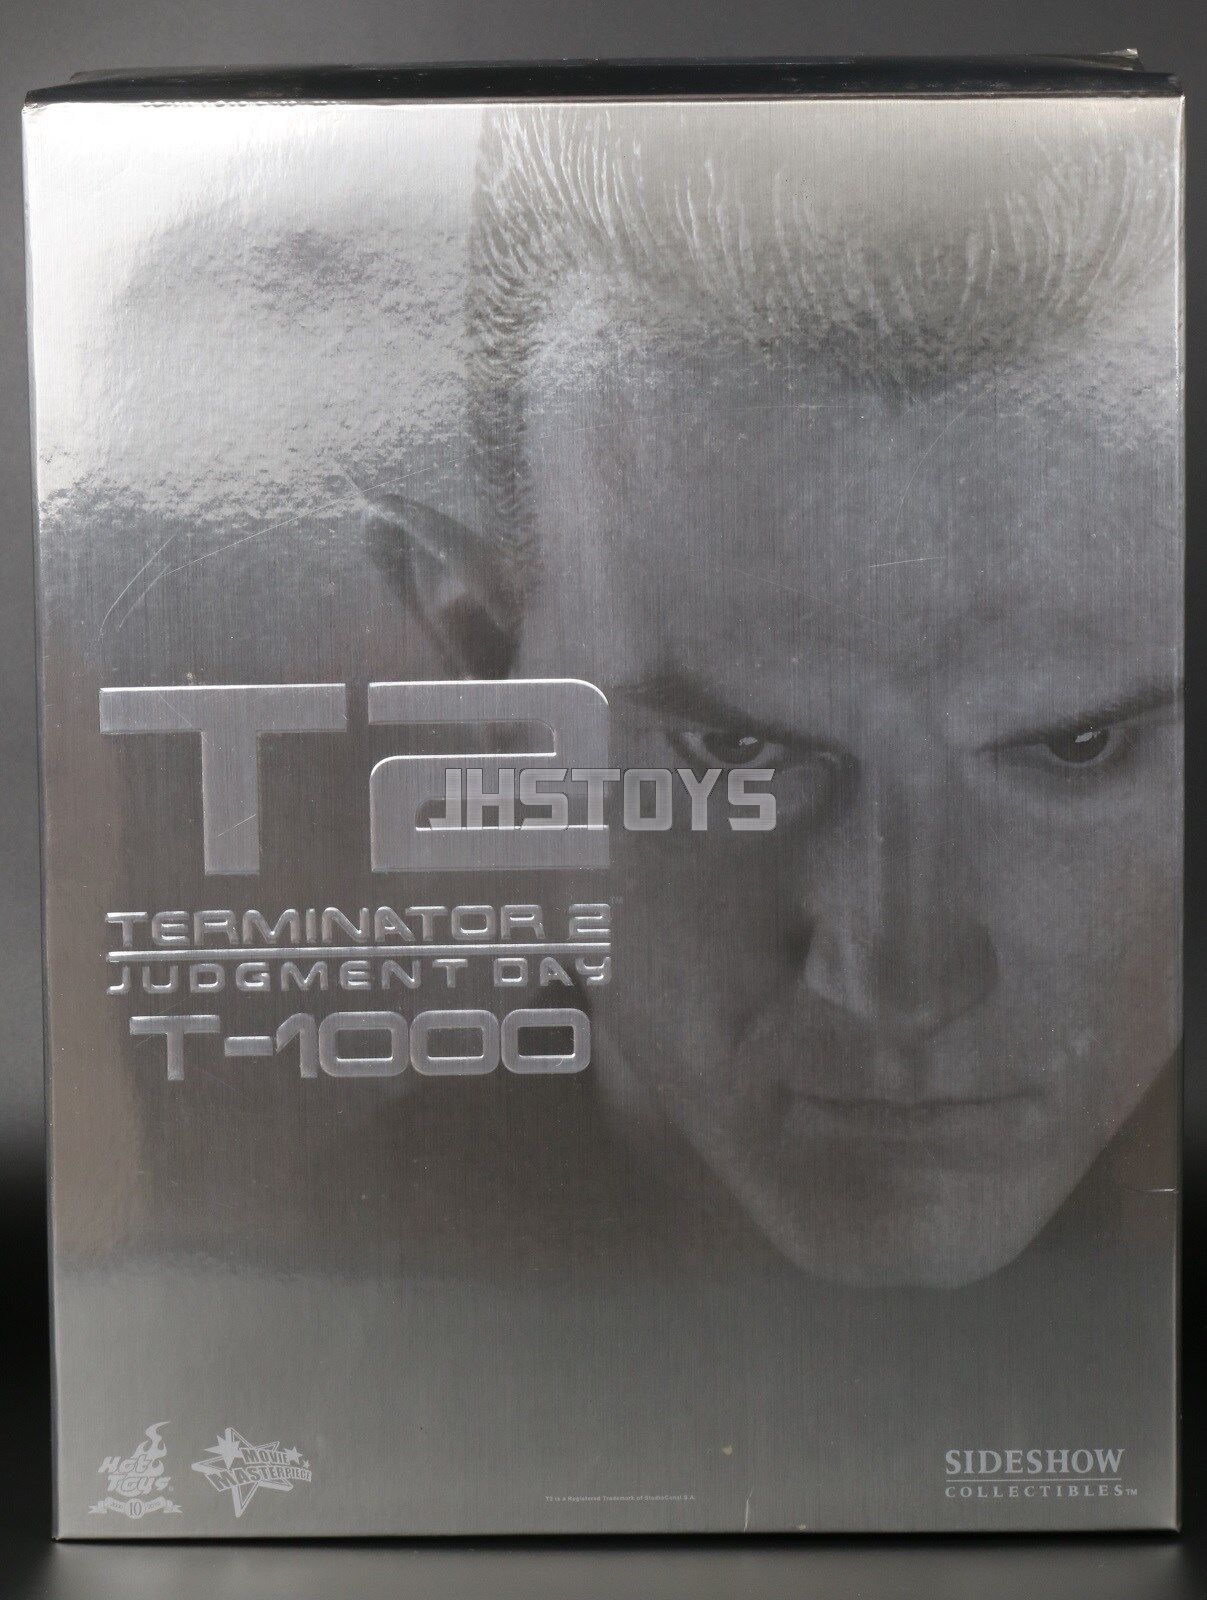 Hot Toys 1/6 Terminator 2 Judgment Day T-1000 T1000 MMS129